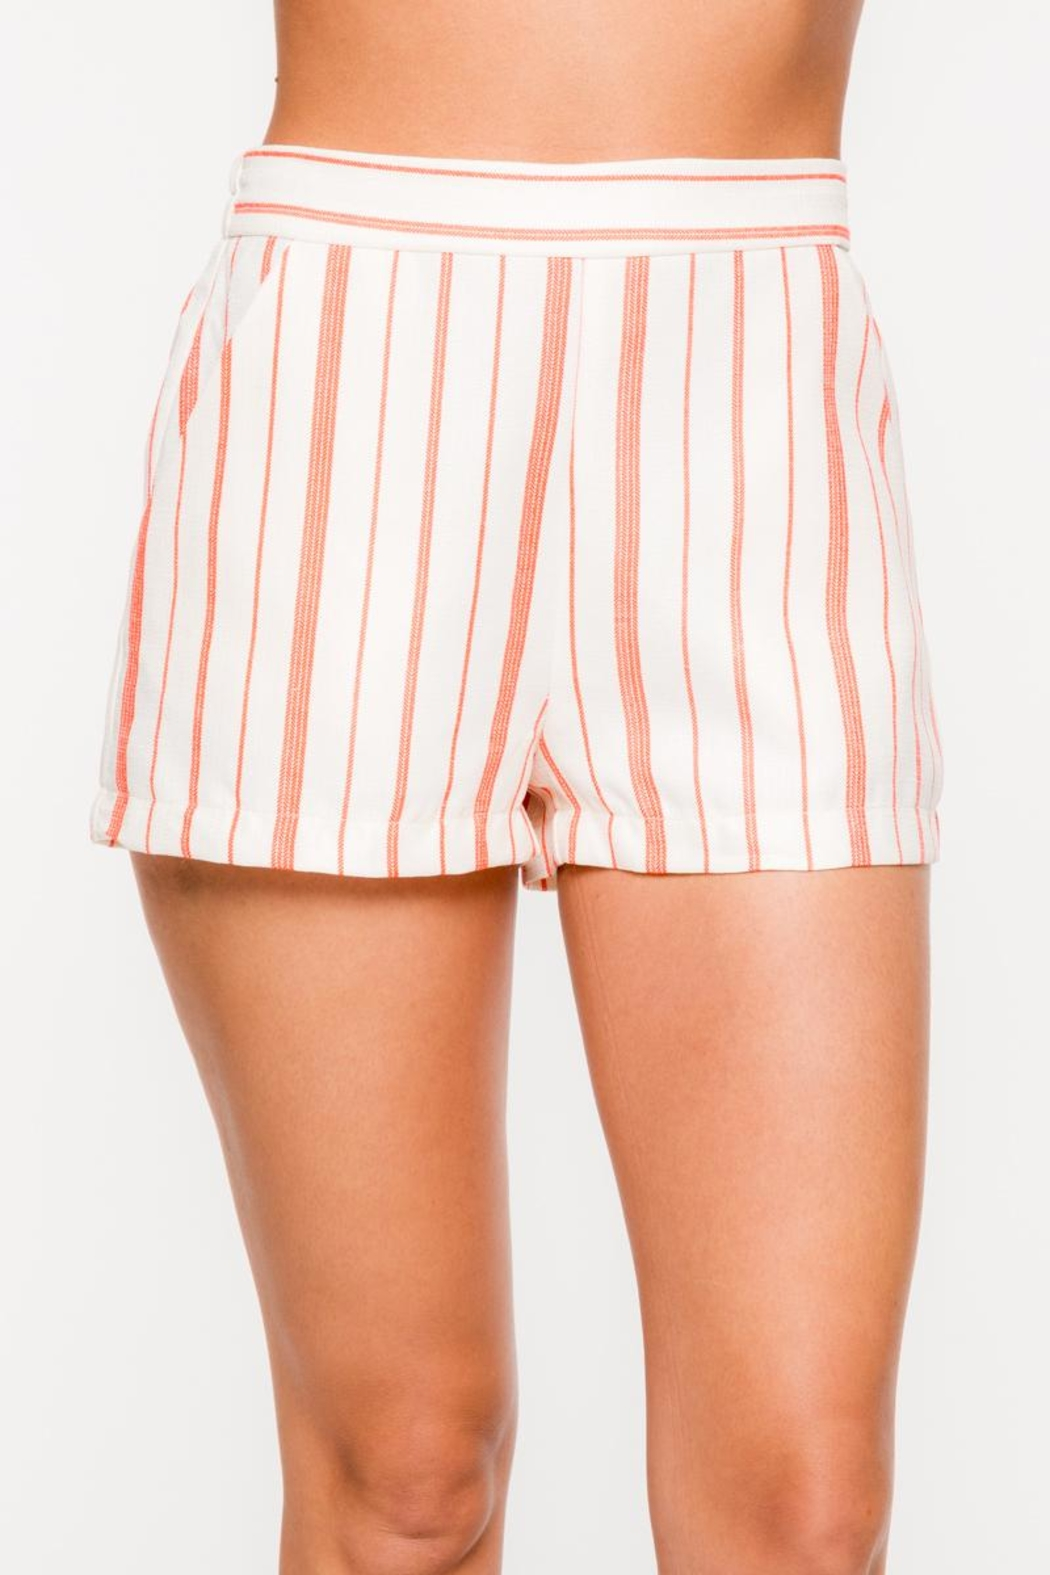 Everly Vertical Striped Shorts - Main Image